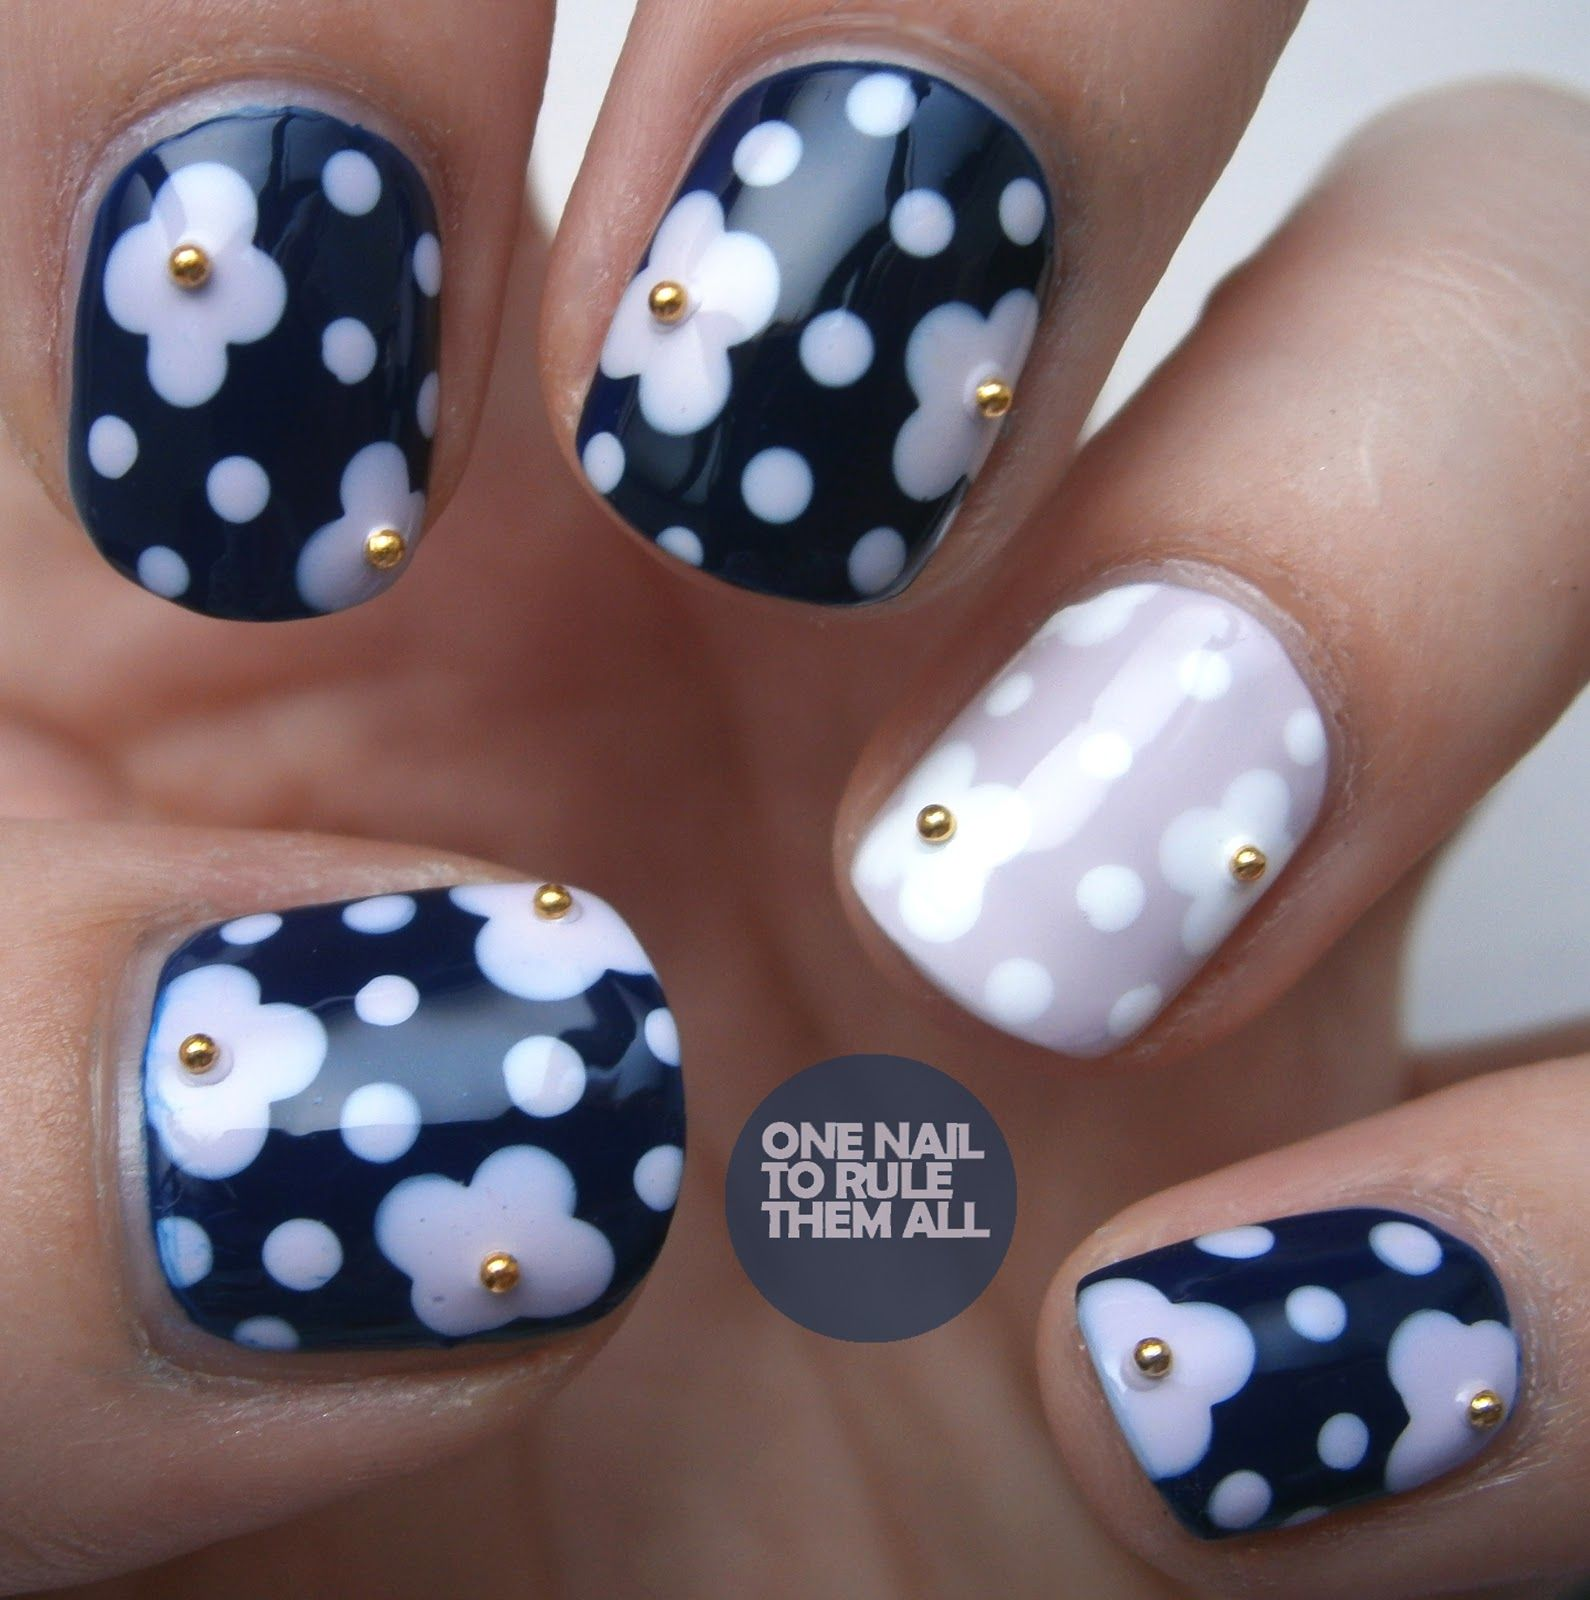 One Nail To Rule Them All: Flowers and beads   Beauty   Nails & Art ...